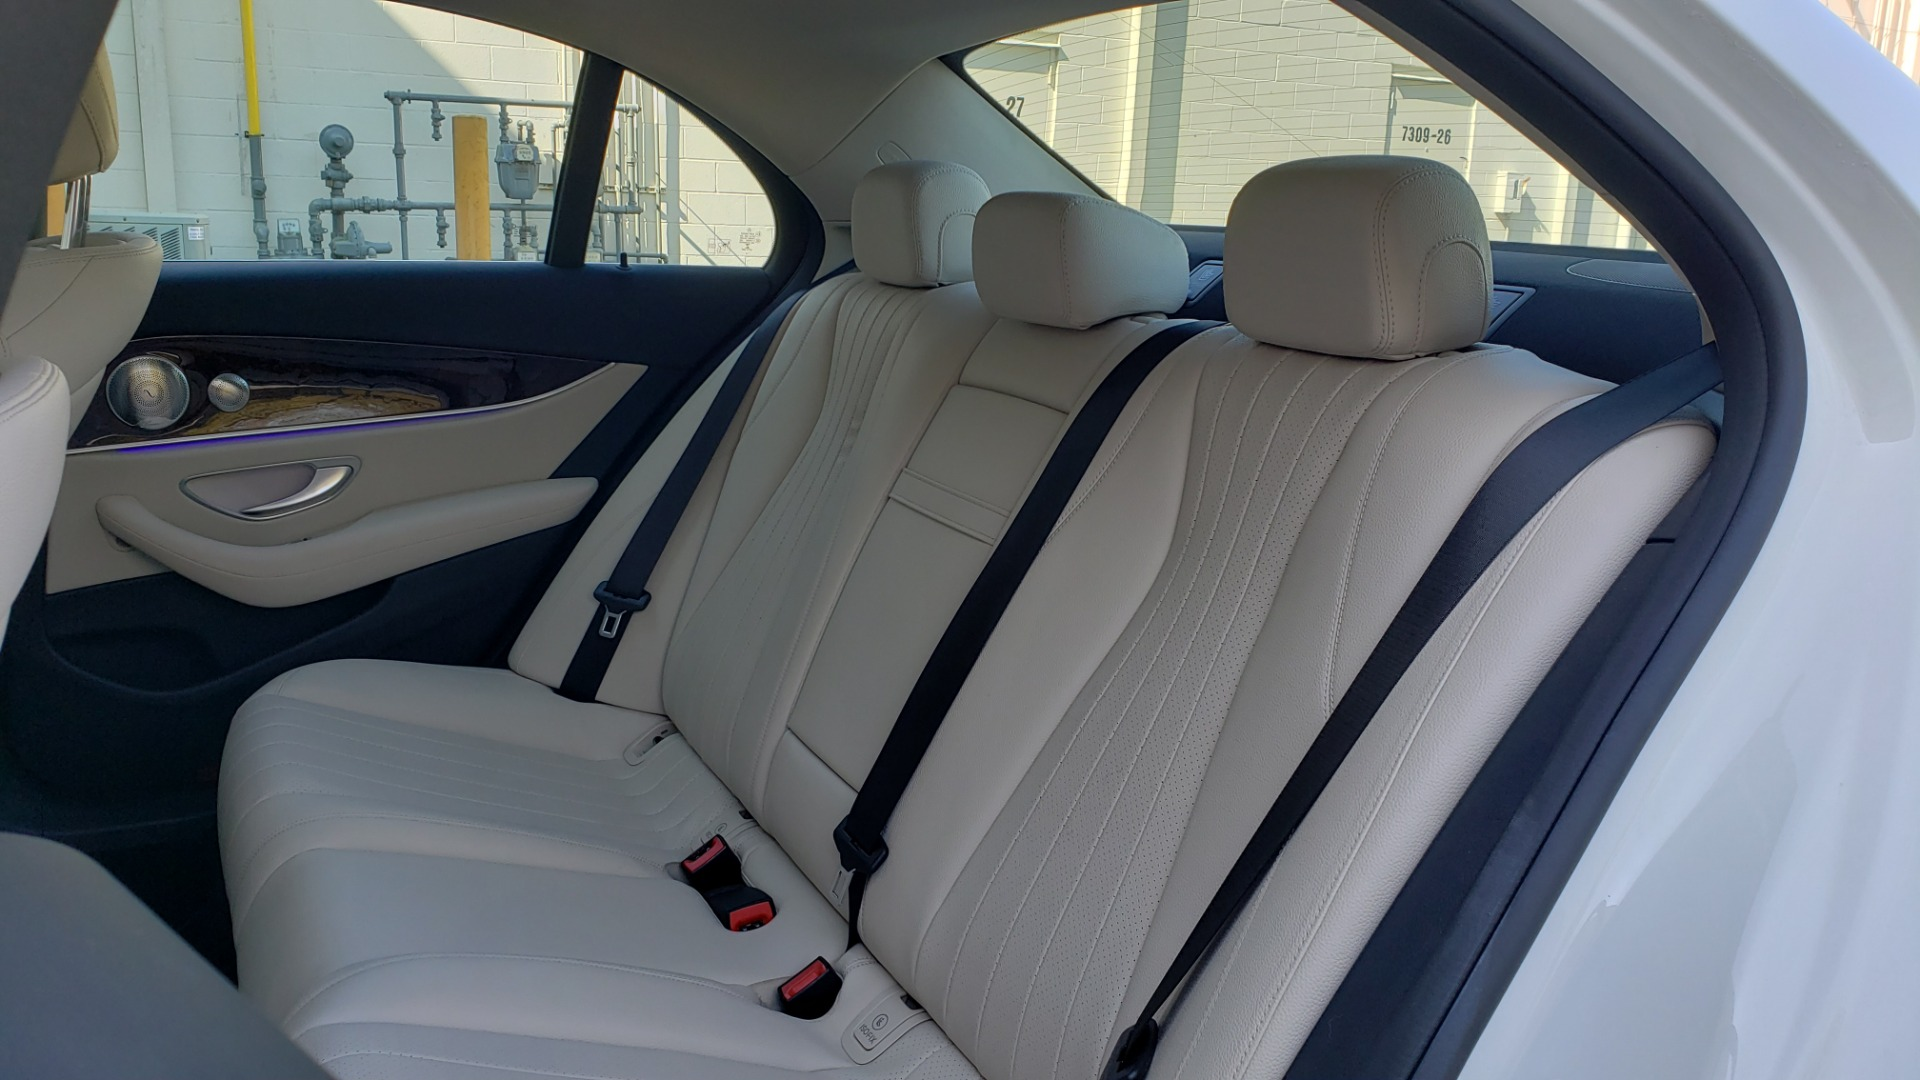 Used 2017 Mercedes-Benz E-Class E 300 PREMIUM / RWD / NAV / SNF / PARKING PILOT / REARVIEW / BURMESTER for sale Sold at Formula Imports in Charlotte NC 28227 55